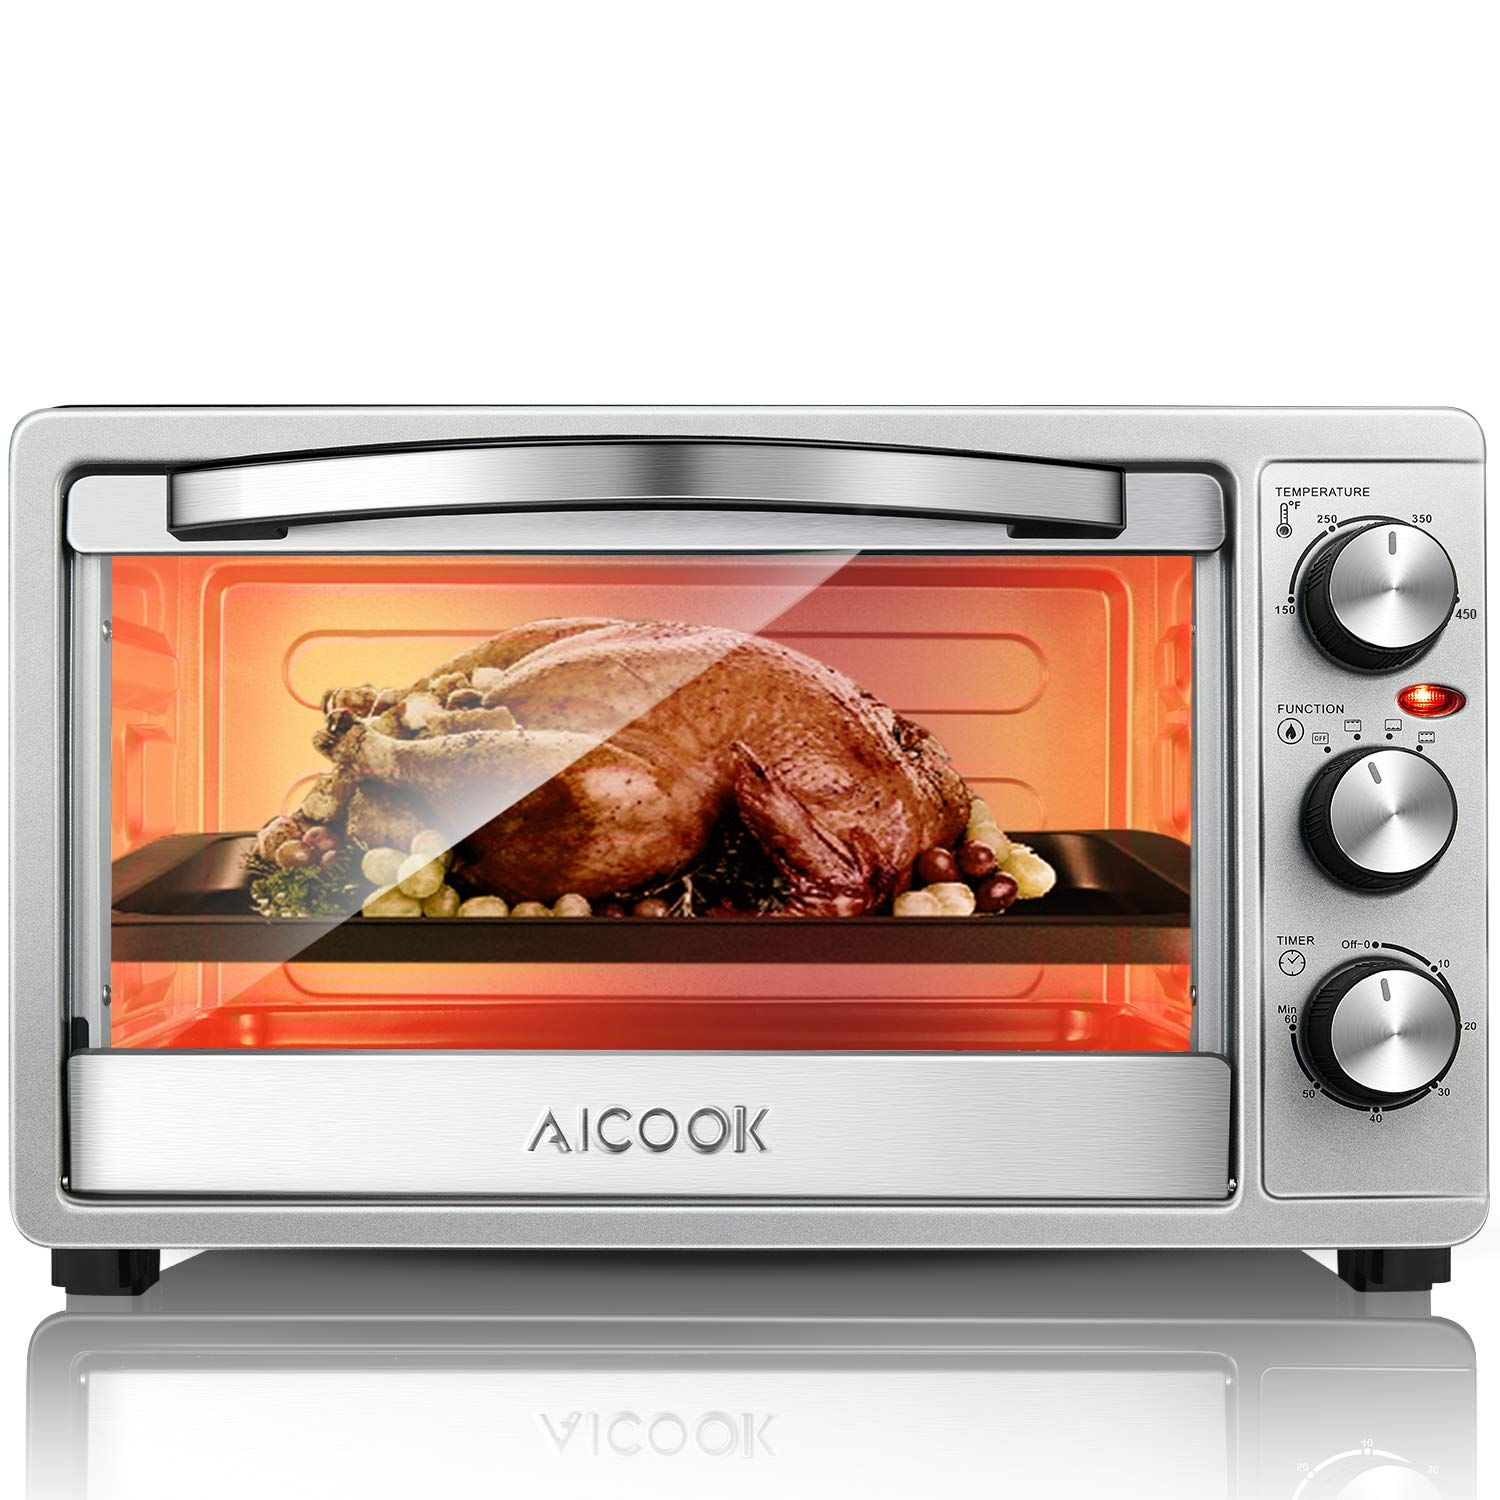 Toaster Oven, 6 Slices of Bread Large Countertop Oven SpeedBaking with Variable Temperature Control, Up and Down Adjustable Heating Element Function Classic Stainless Steel Broiler by AICOOK